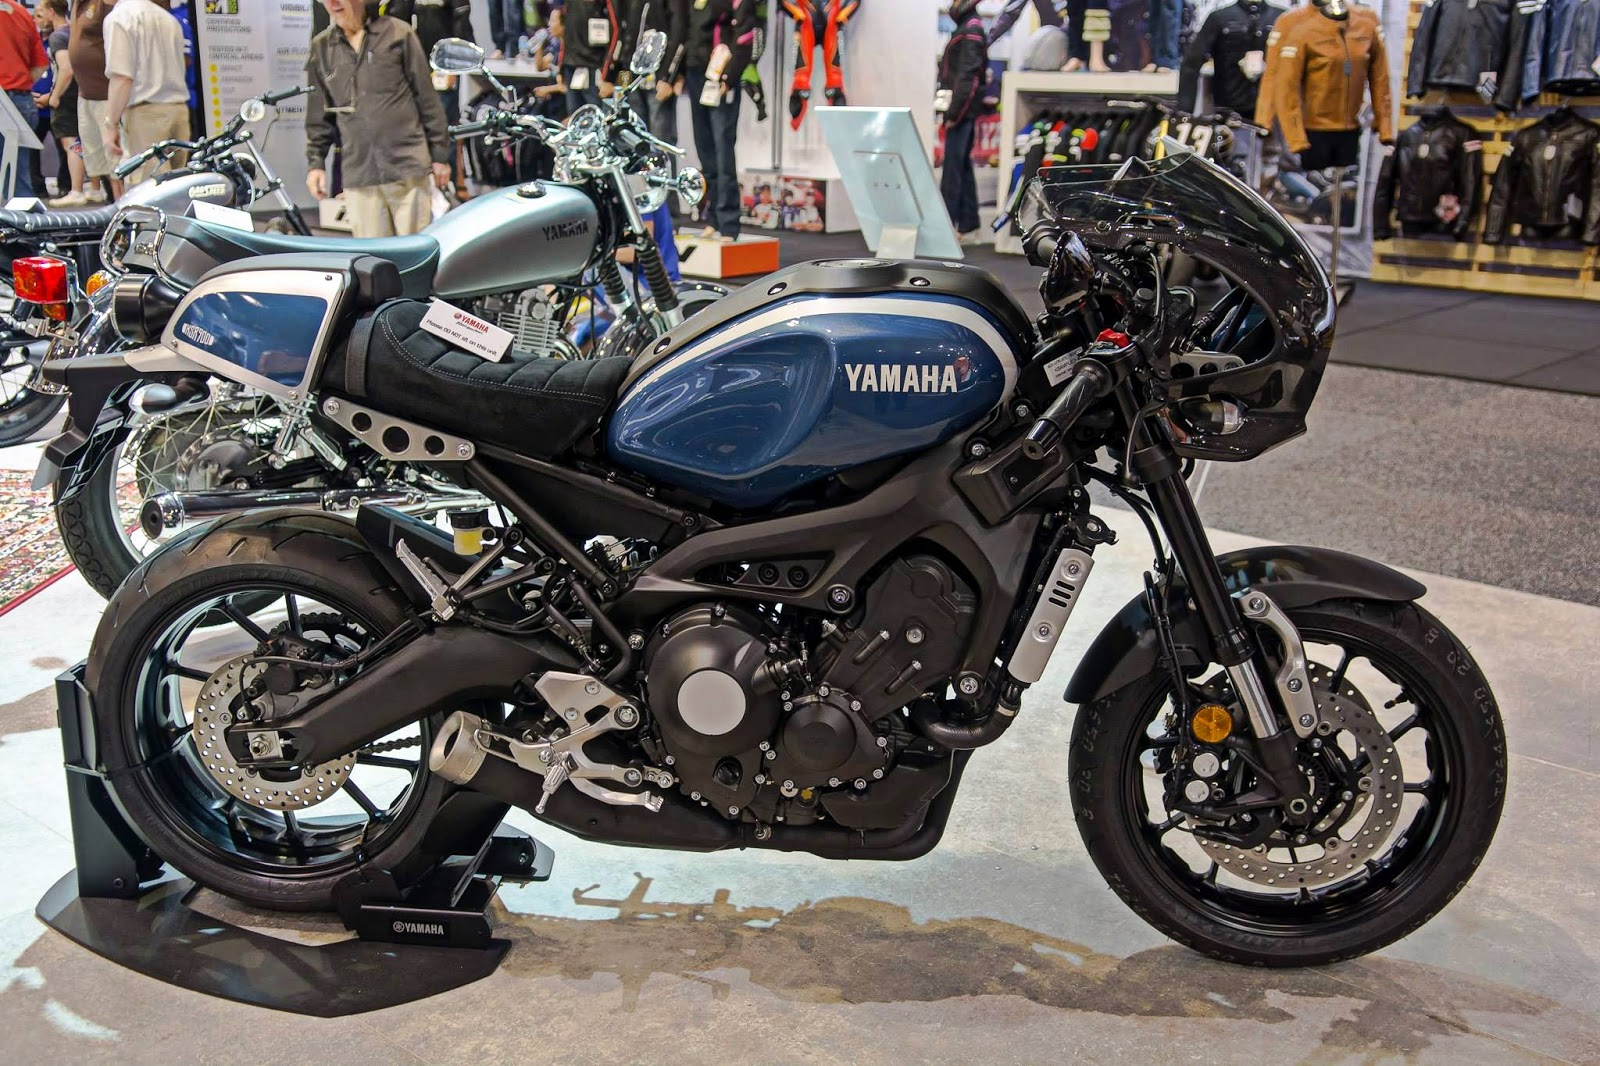 yamaha xsr 900 new motorcycles faster son cafe racer tracker restyle project. Black Bedroom Furniture Sets. Home Design Ideas